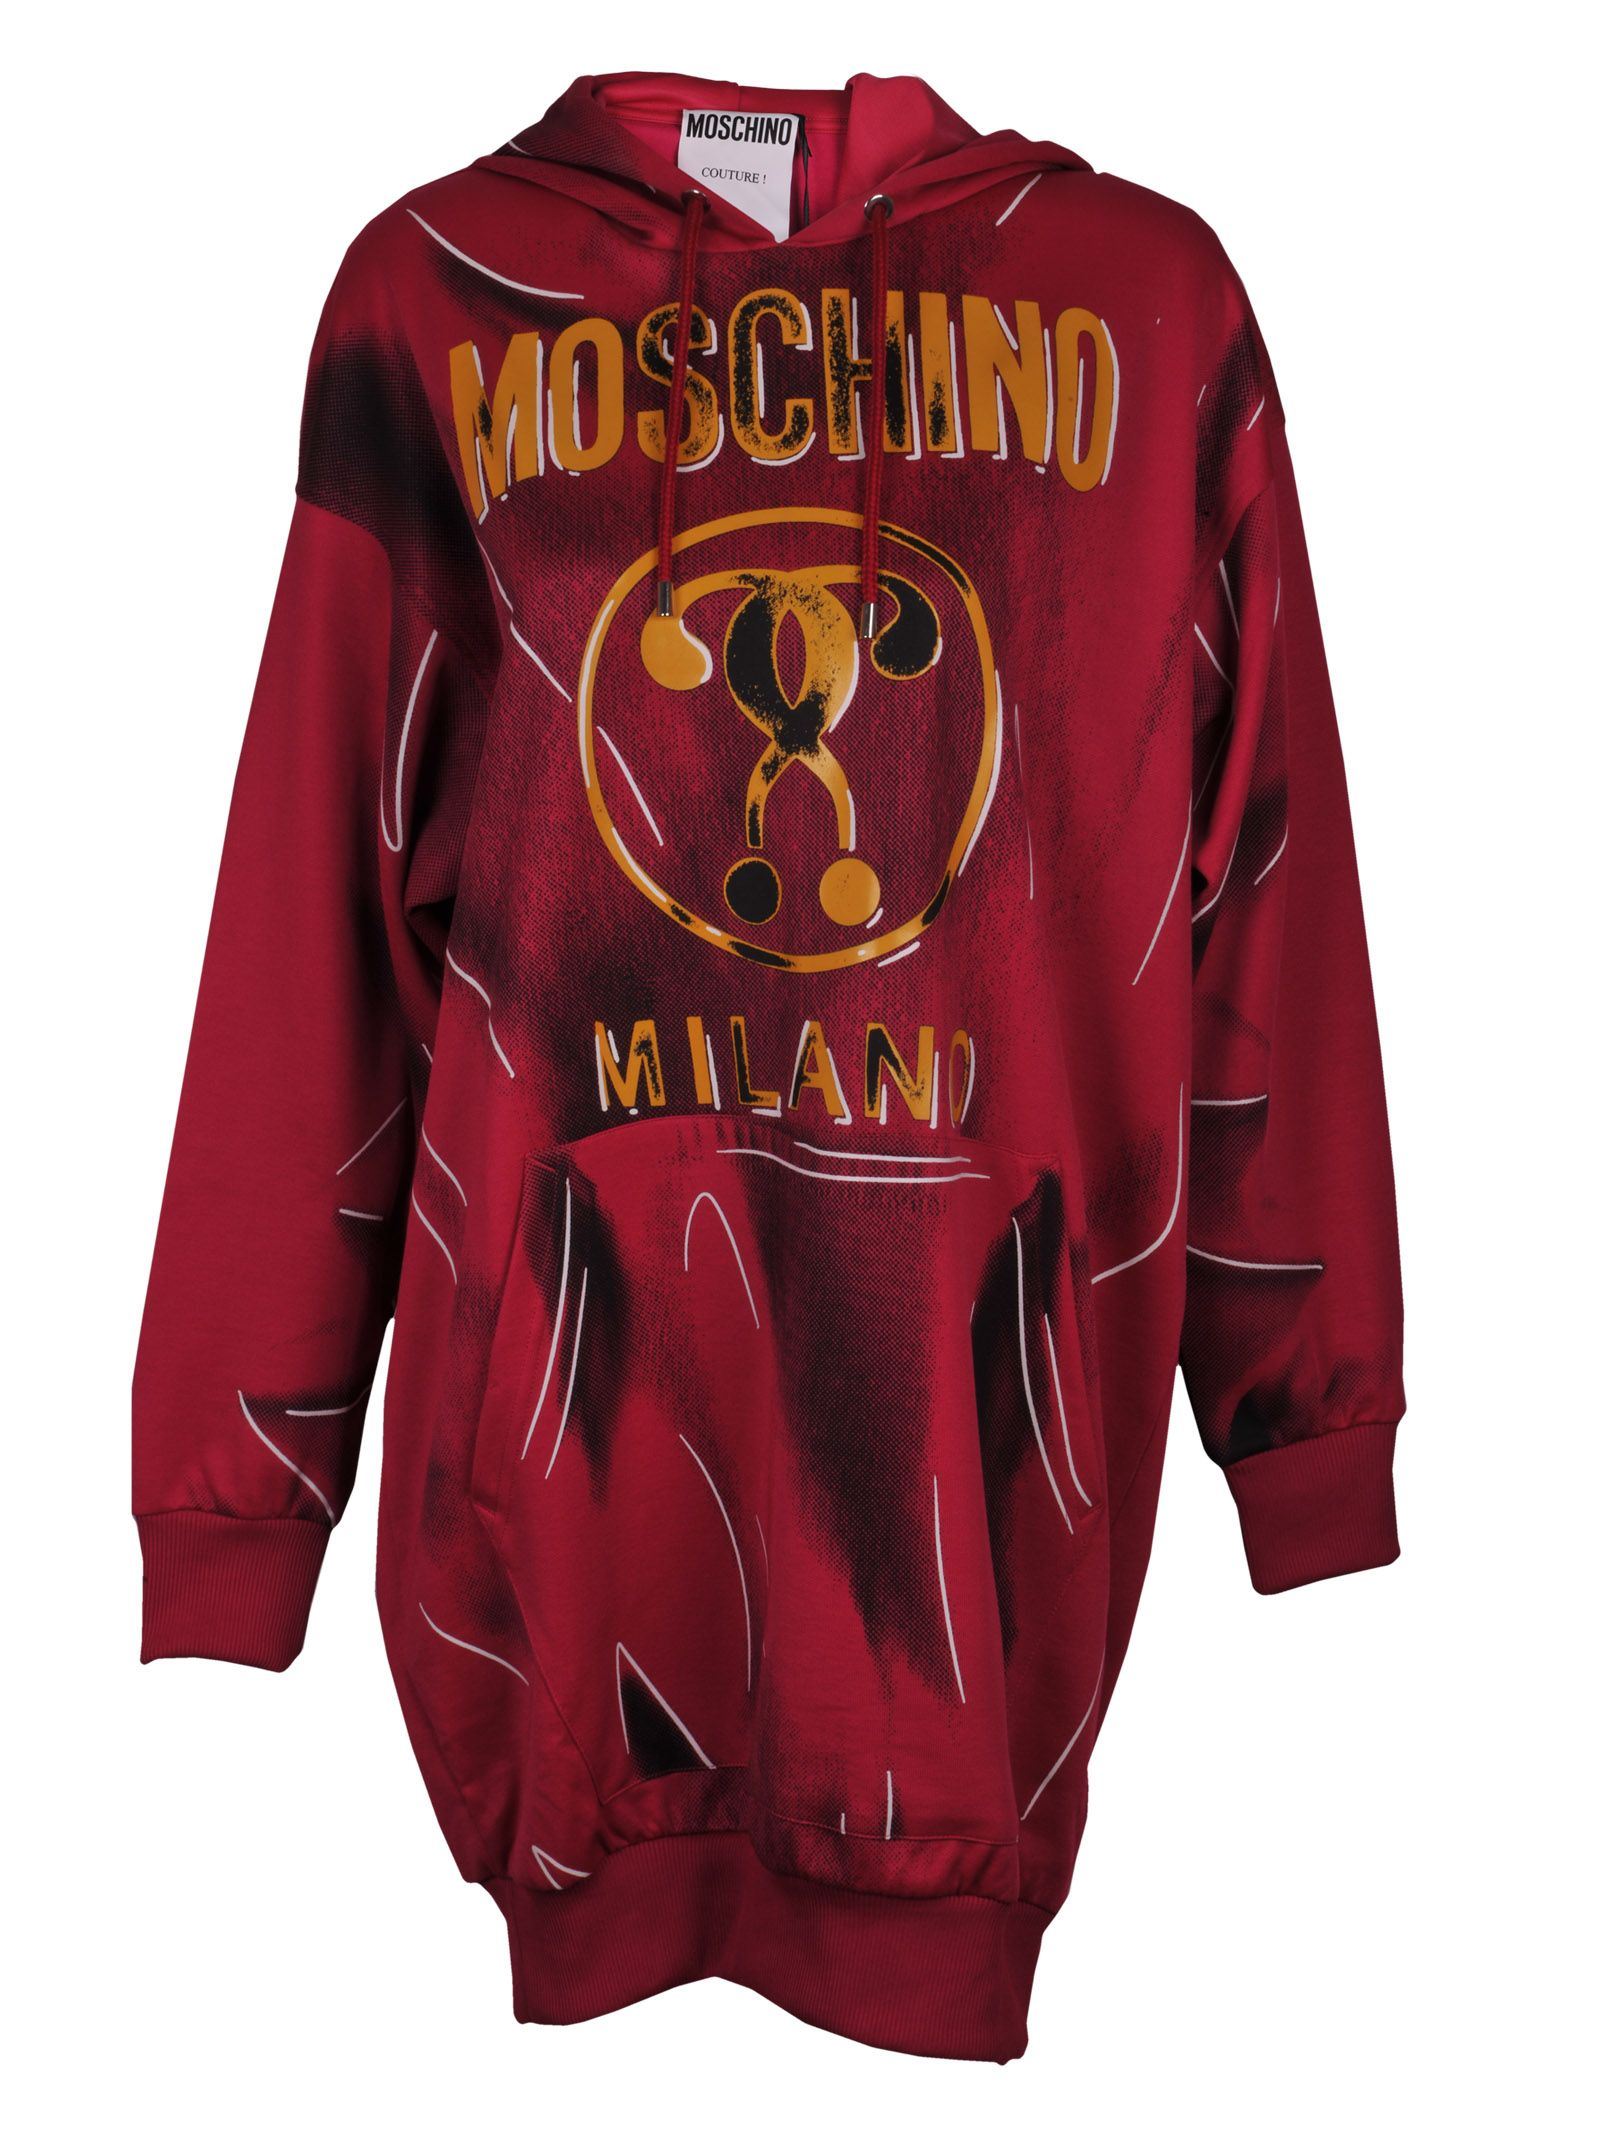 optical illusion logo sweatshirt dress from moschino: red optical illusion logo sweatshirt dress with hood with drawstring tie fastenings, kangaroo pocket, long sleeves, mid-length, ribbed hem and cuffs and printed shadow and creased effect.